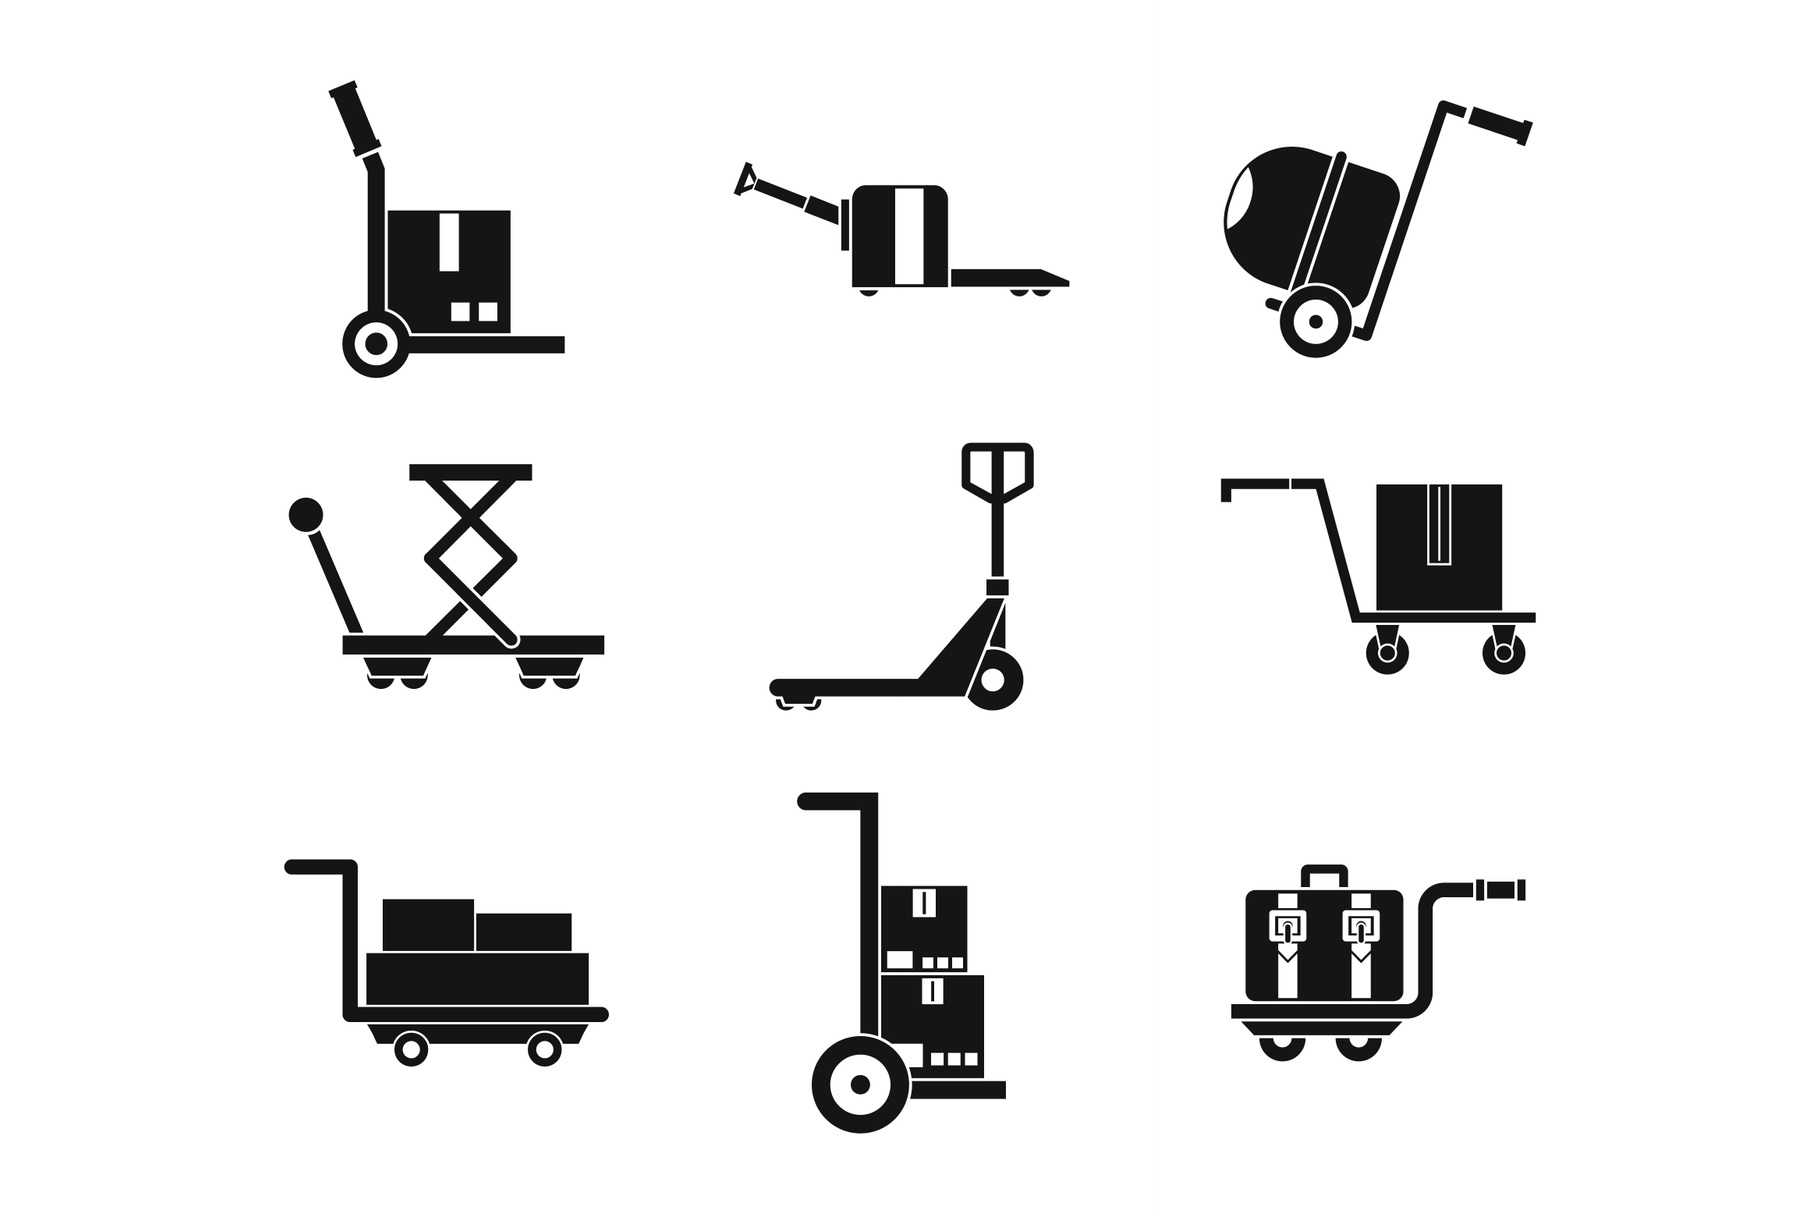 Wharehouse cart icon set, simple style example image 1